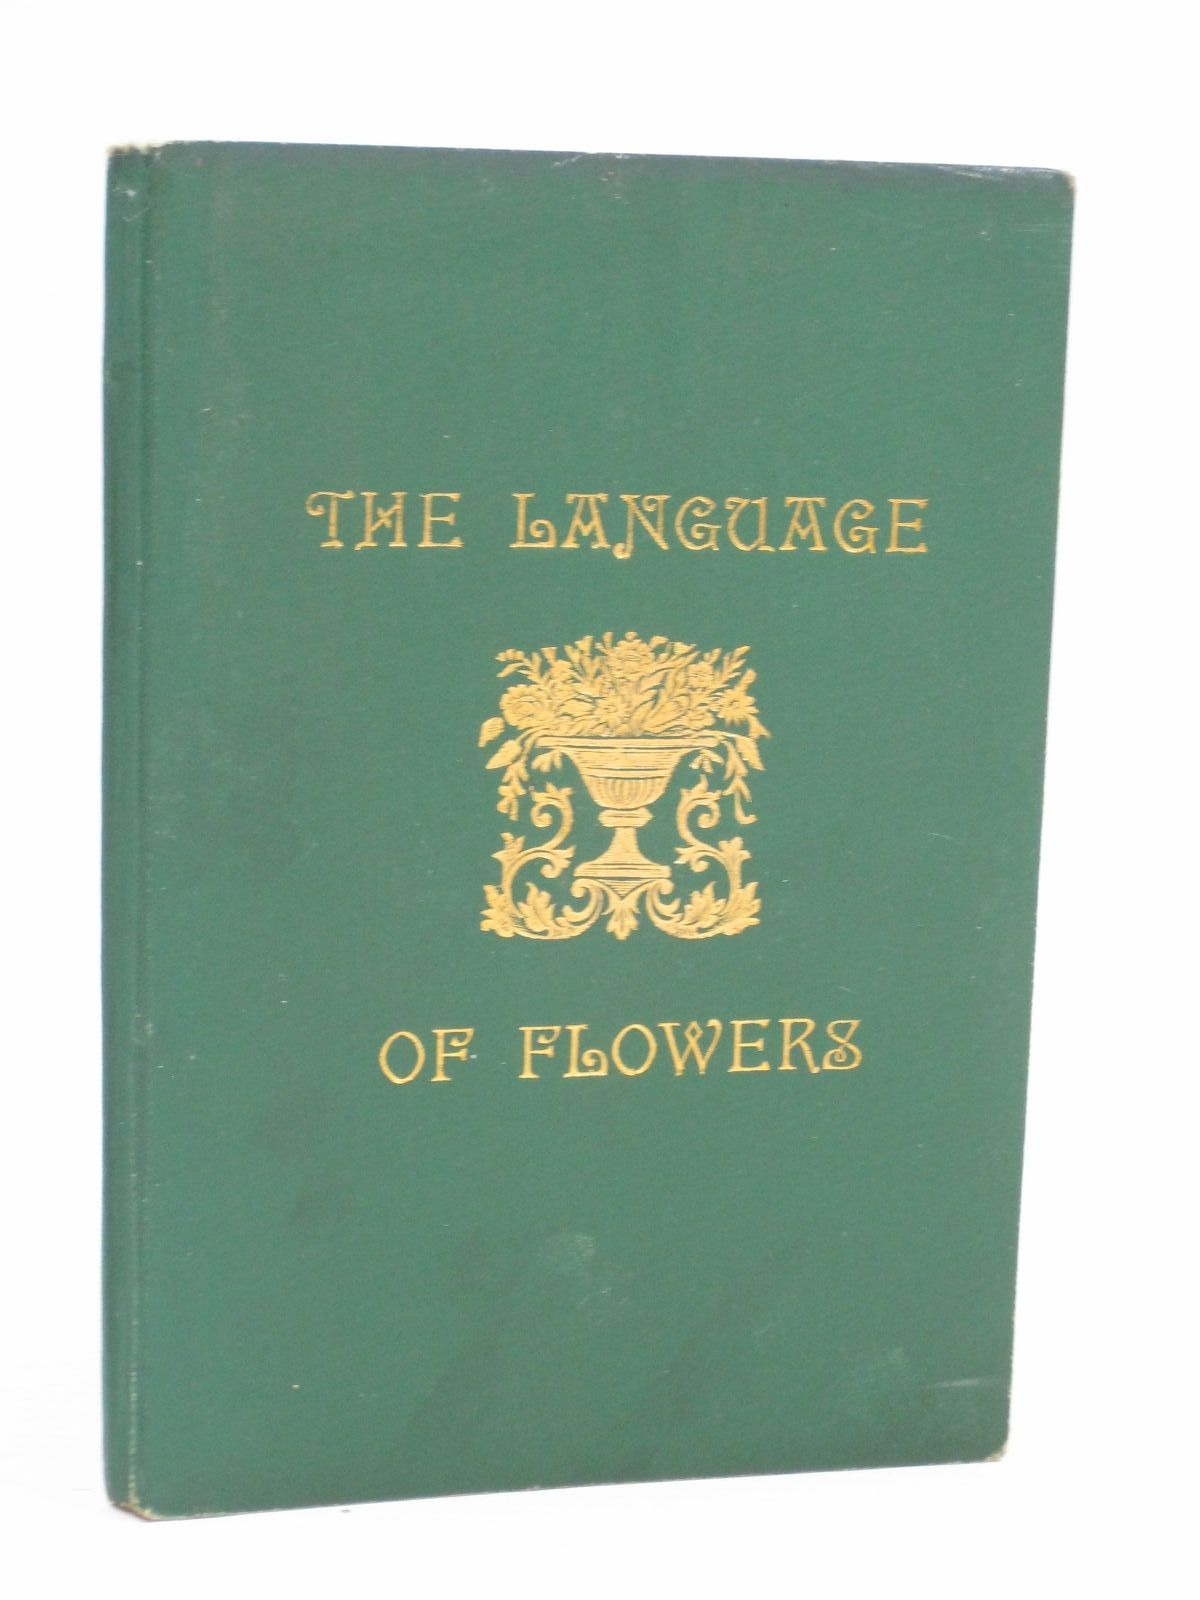 Photo of THE LANGUAGE OF FLOWERS written by Tyas, Robert published by Houlston & Sons (STOCK CODE: 1405095)  for sale by Stella & Rose's Books